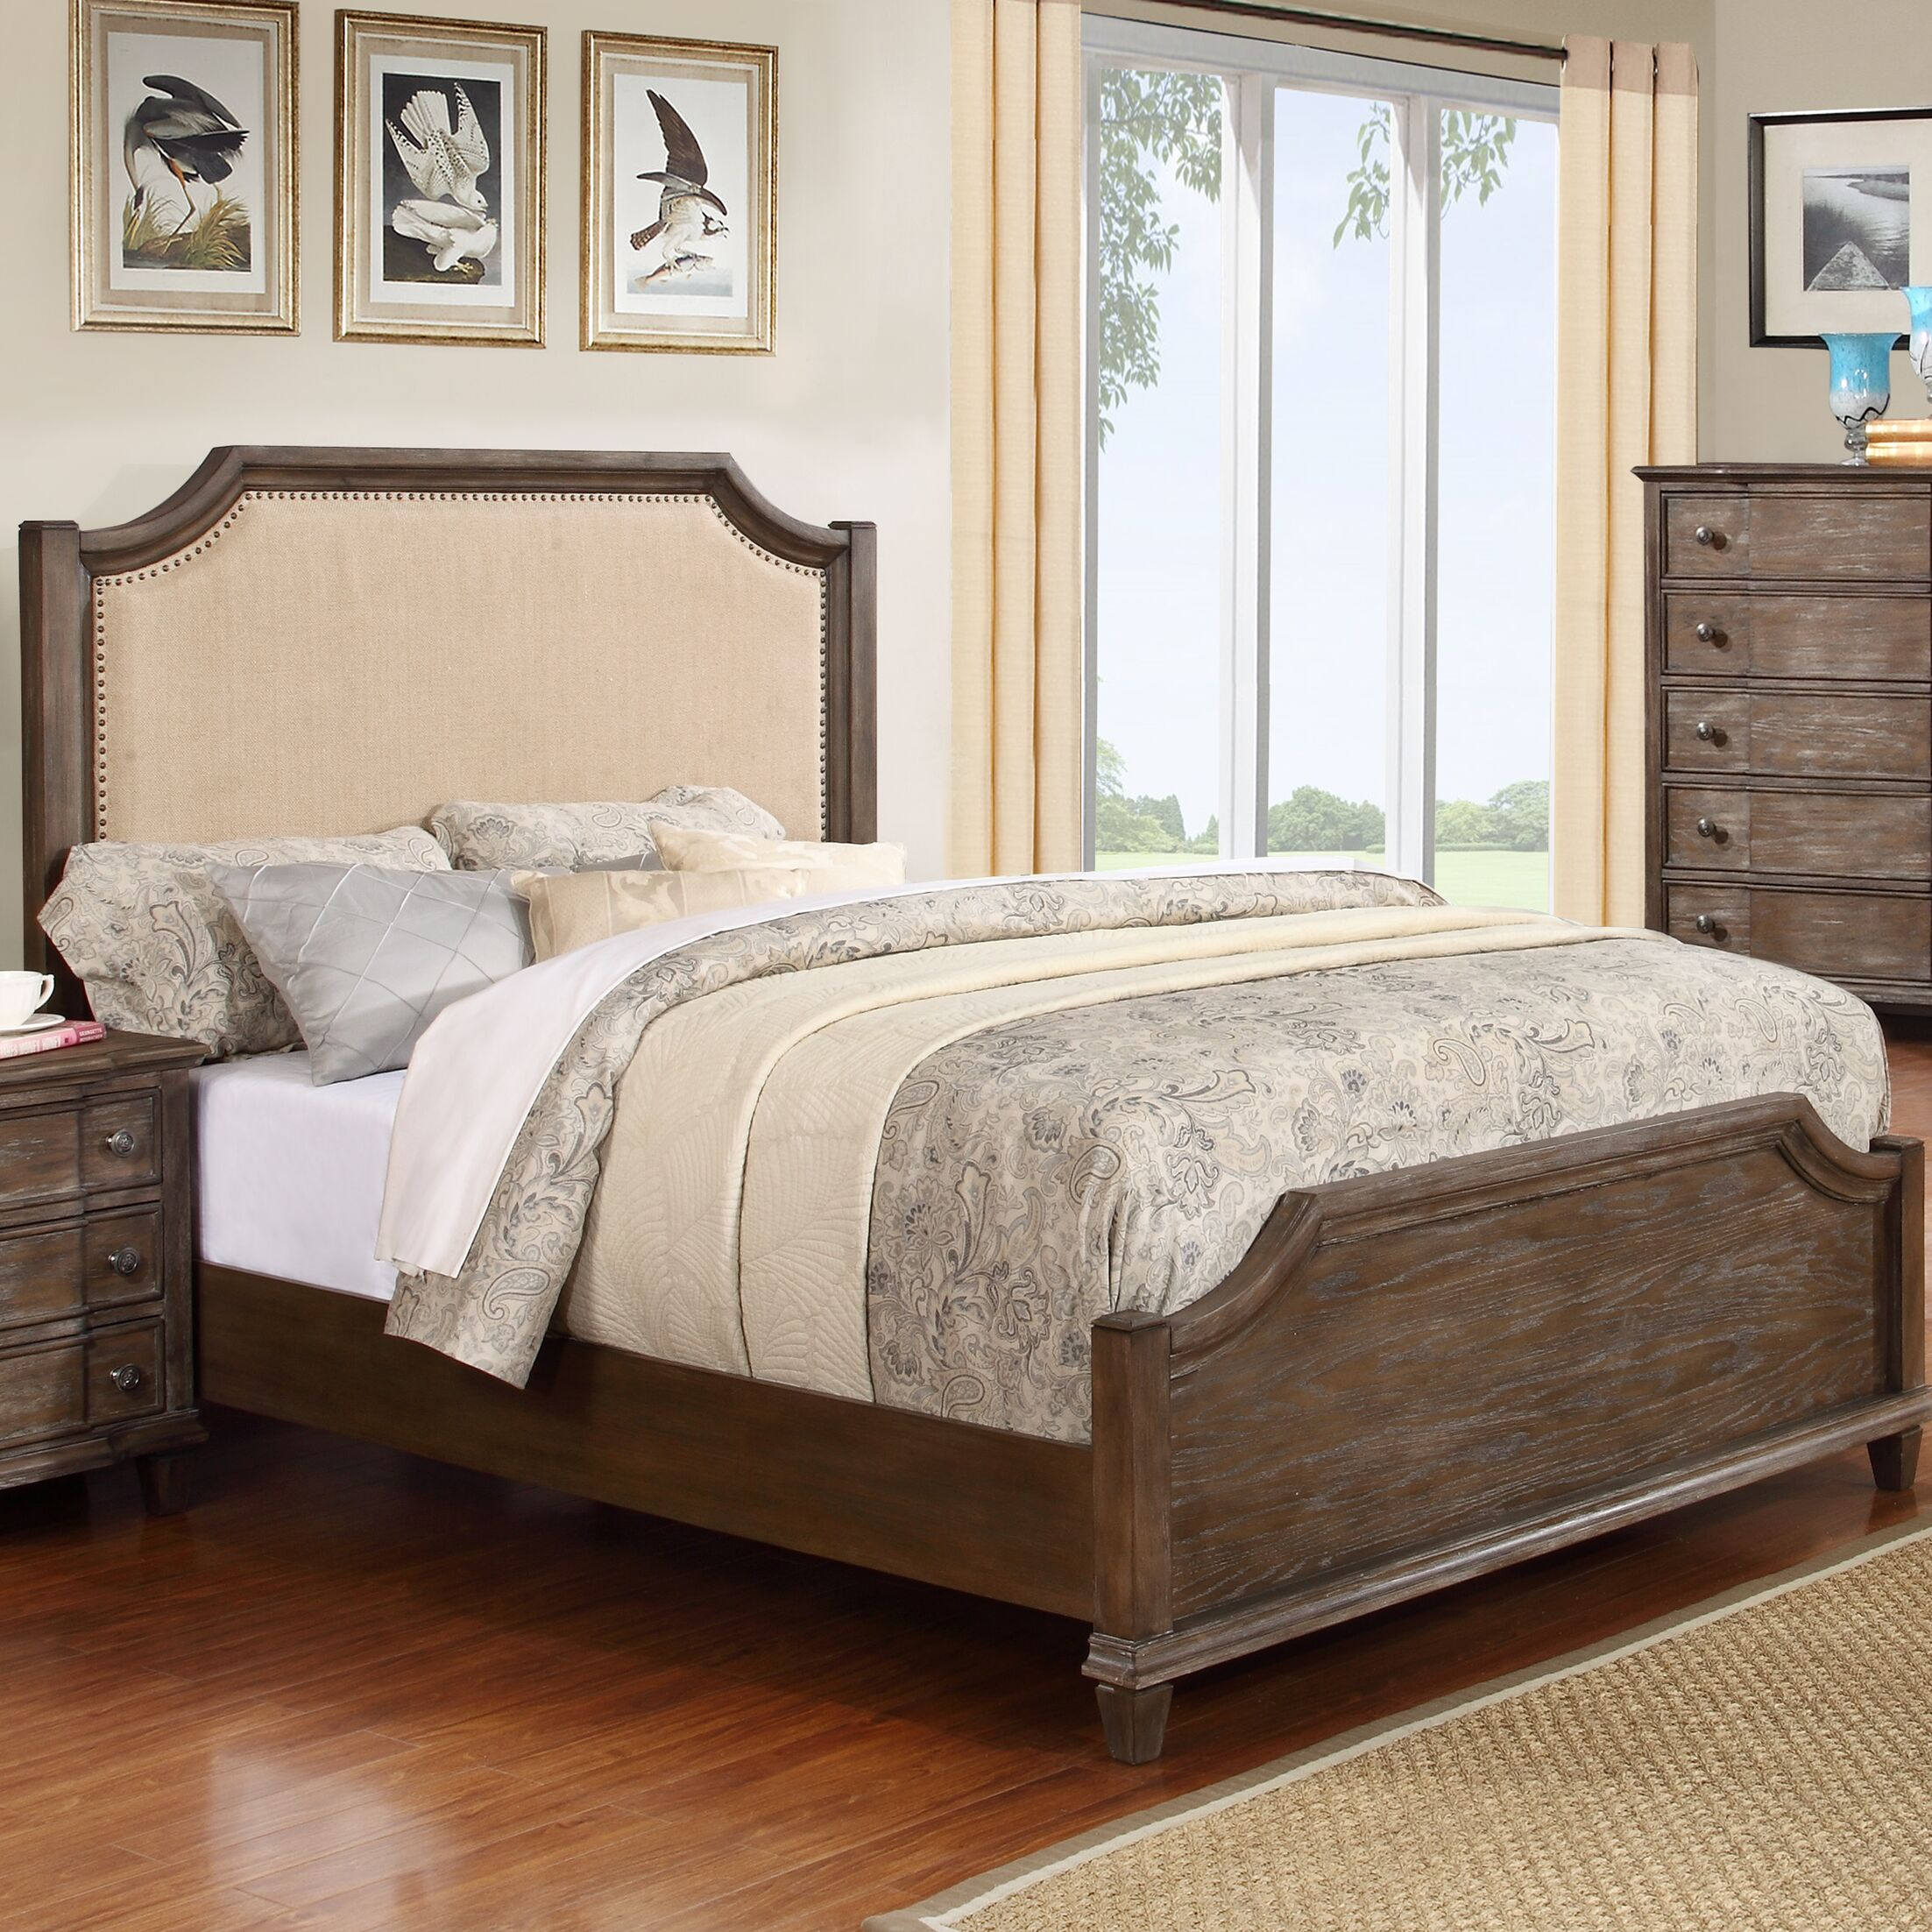 Baston Bed Size: Queen